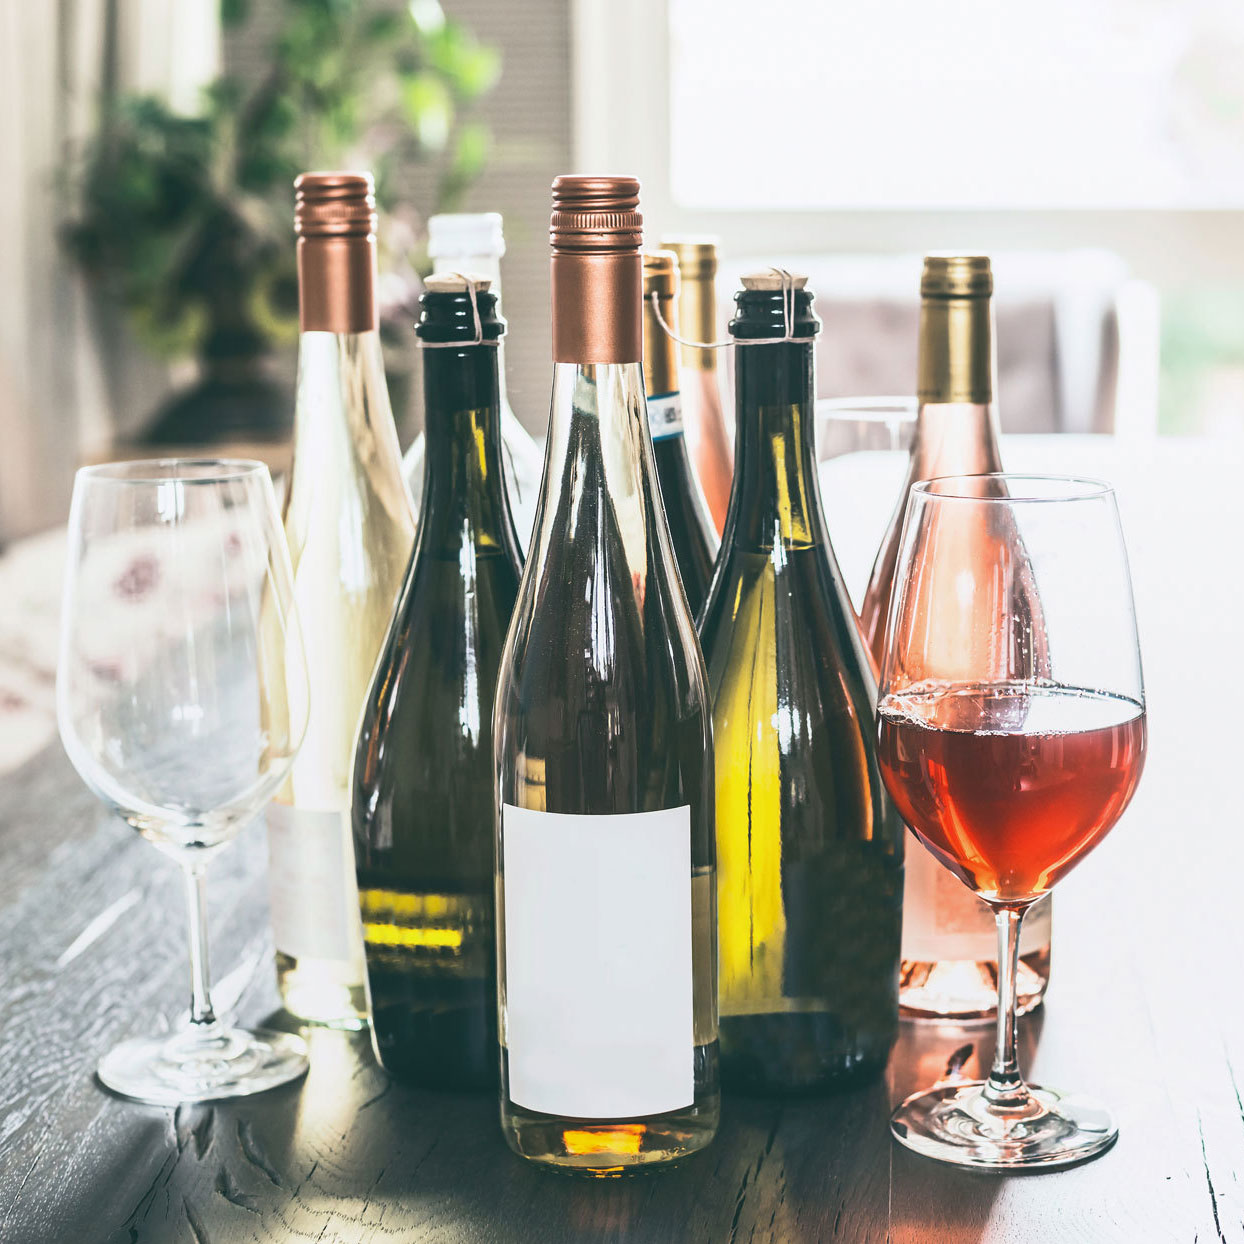 10 Low-Carb Wines That Fit (Almost) Any Diet Plan